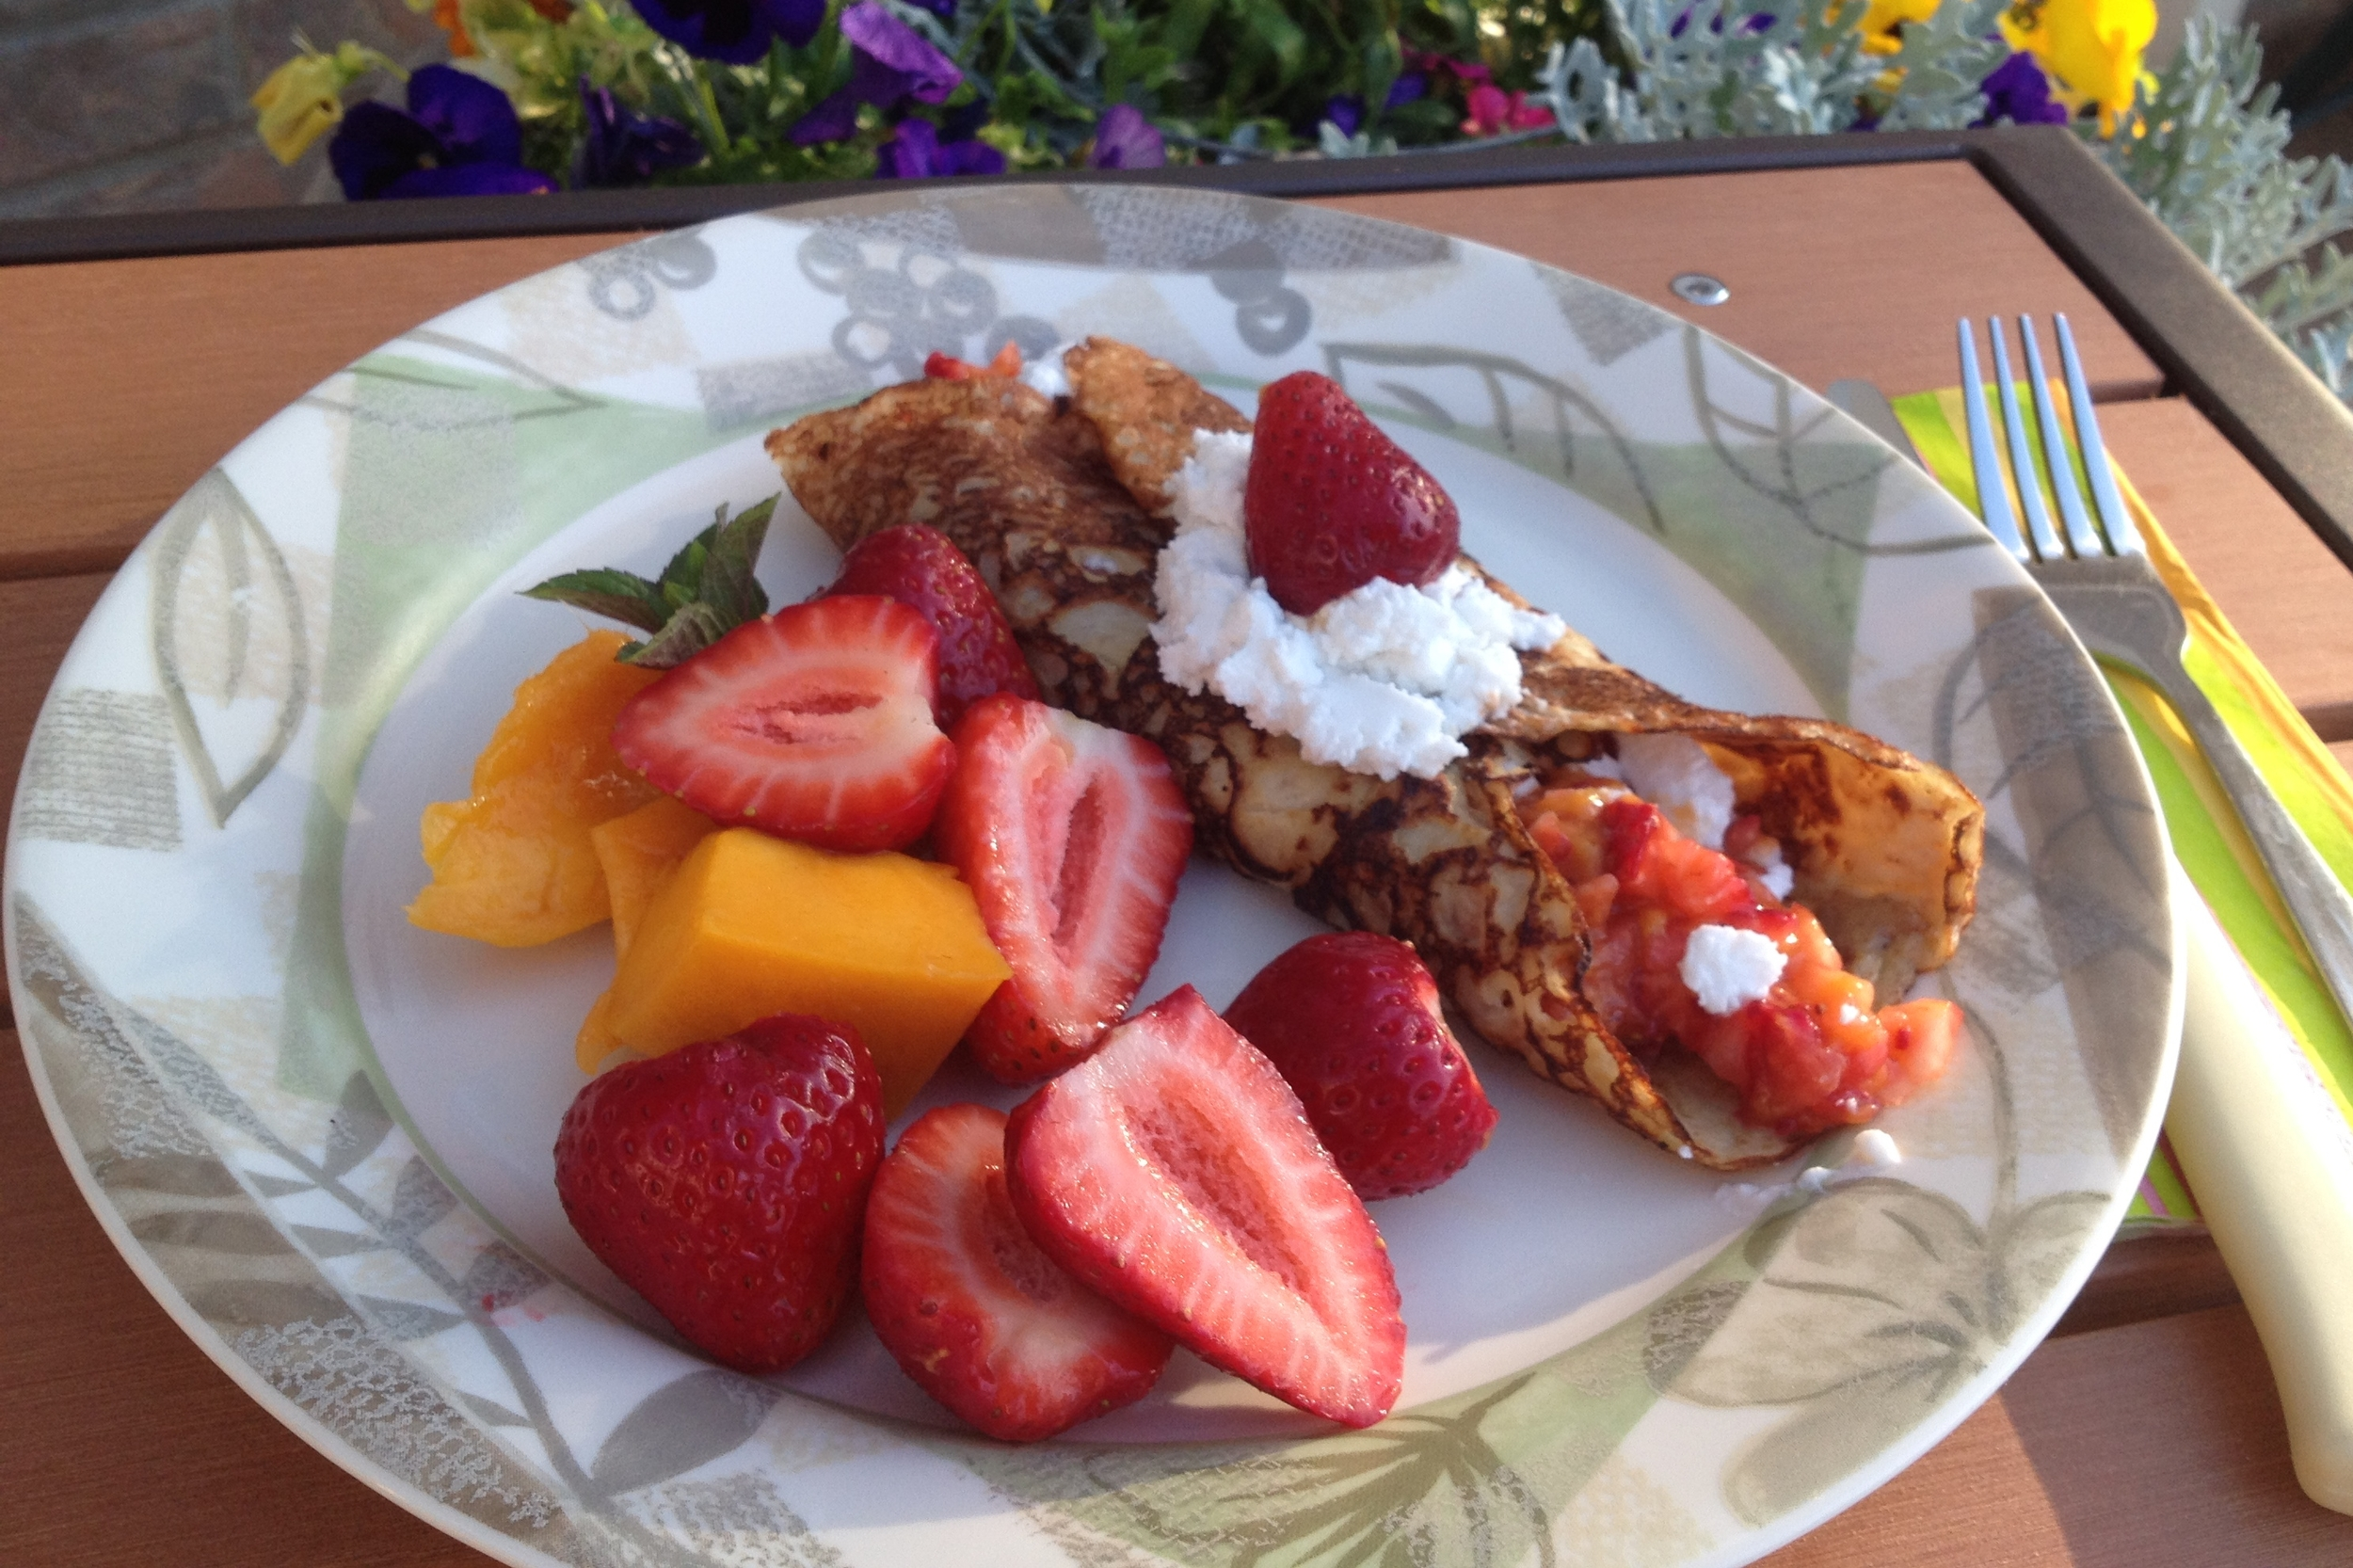 These crepes are perfect for a spring birthday or mother's day coming up soon! Spread with a bit of almond butter and your favorite fresh fruit(or jam), maple syrup and whipped coconut cream, roll up, garnish pretty and yum!